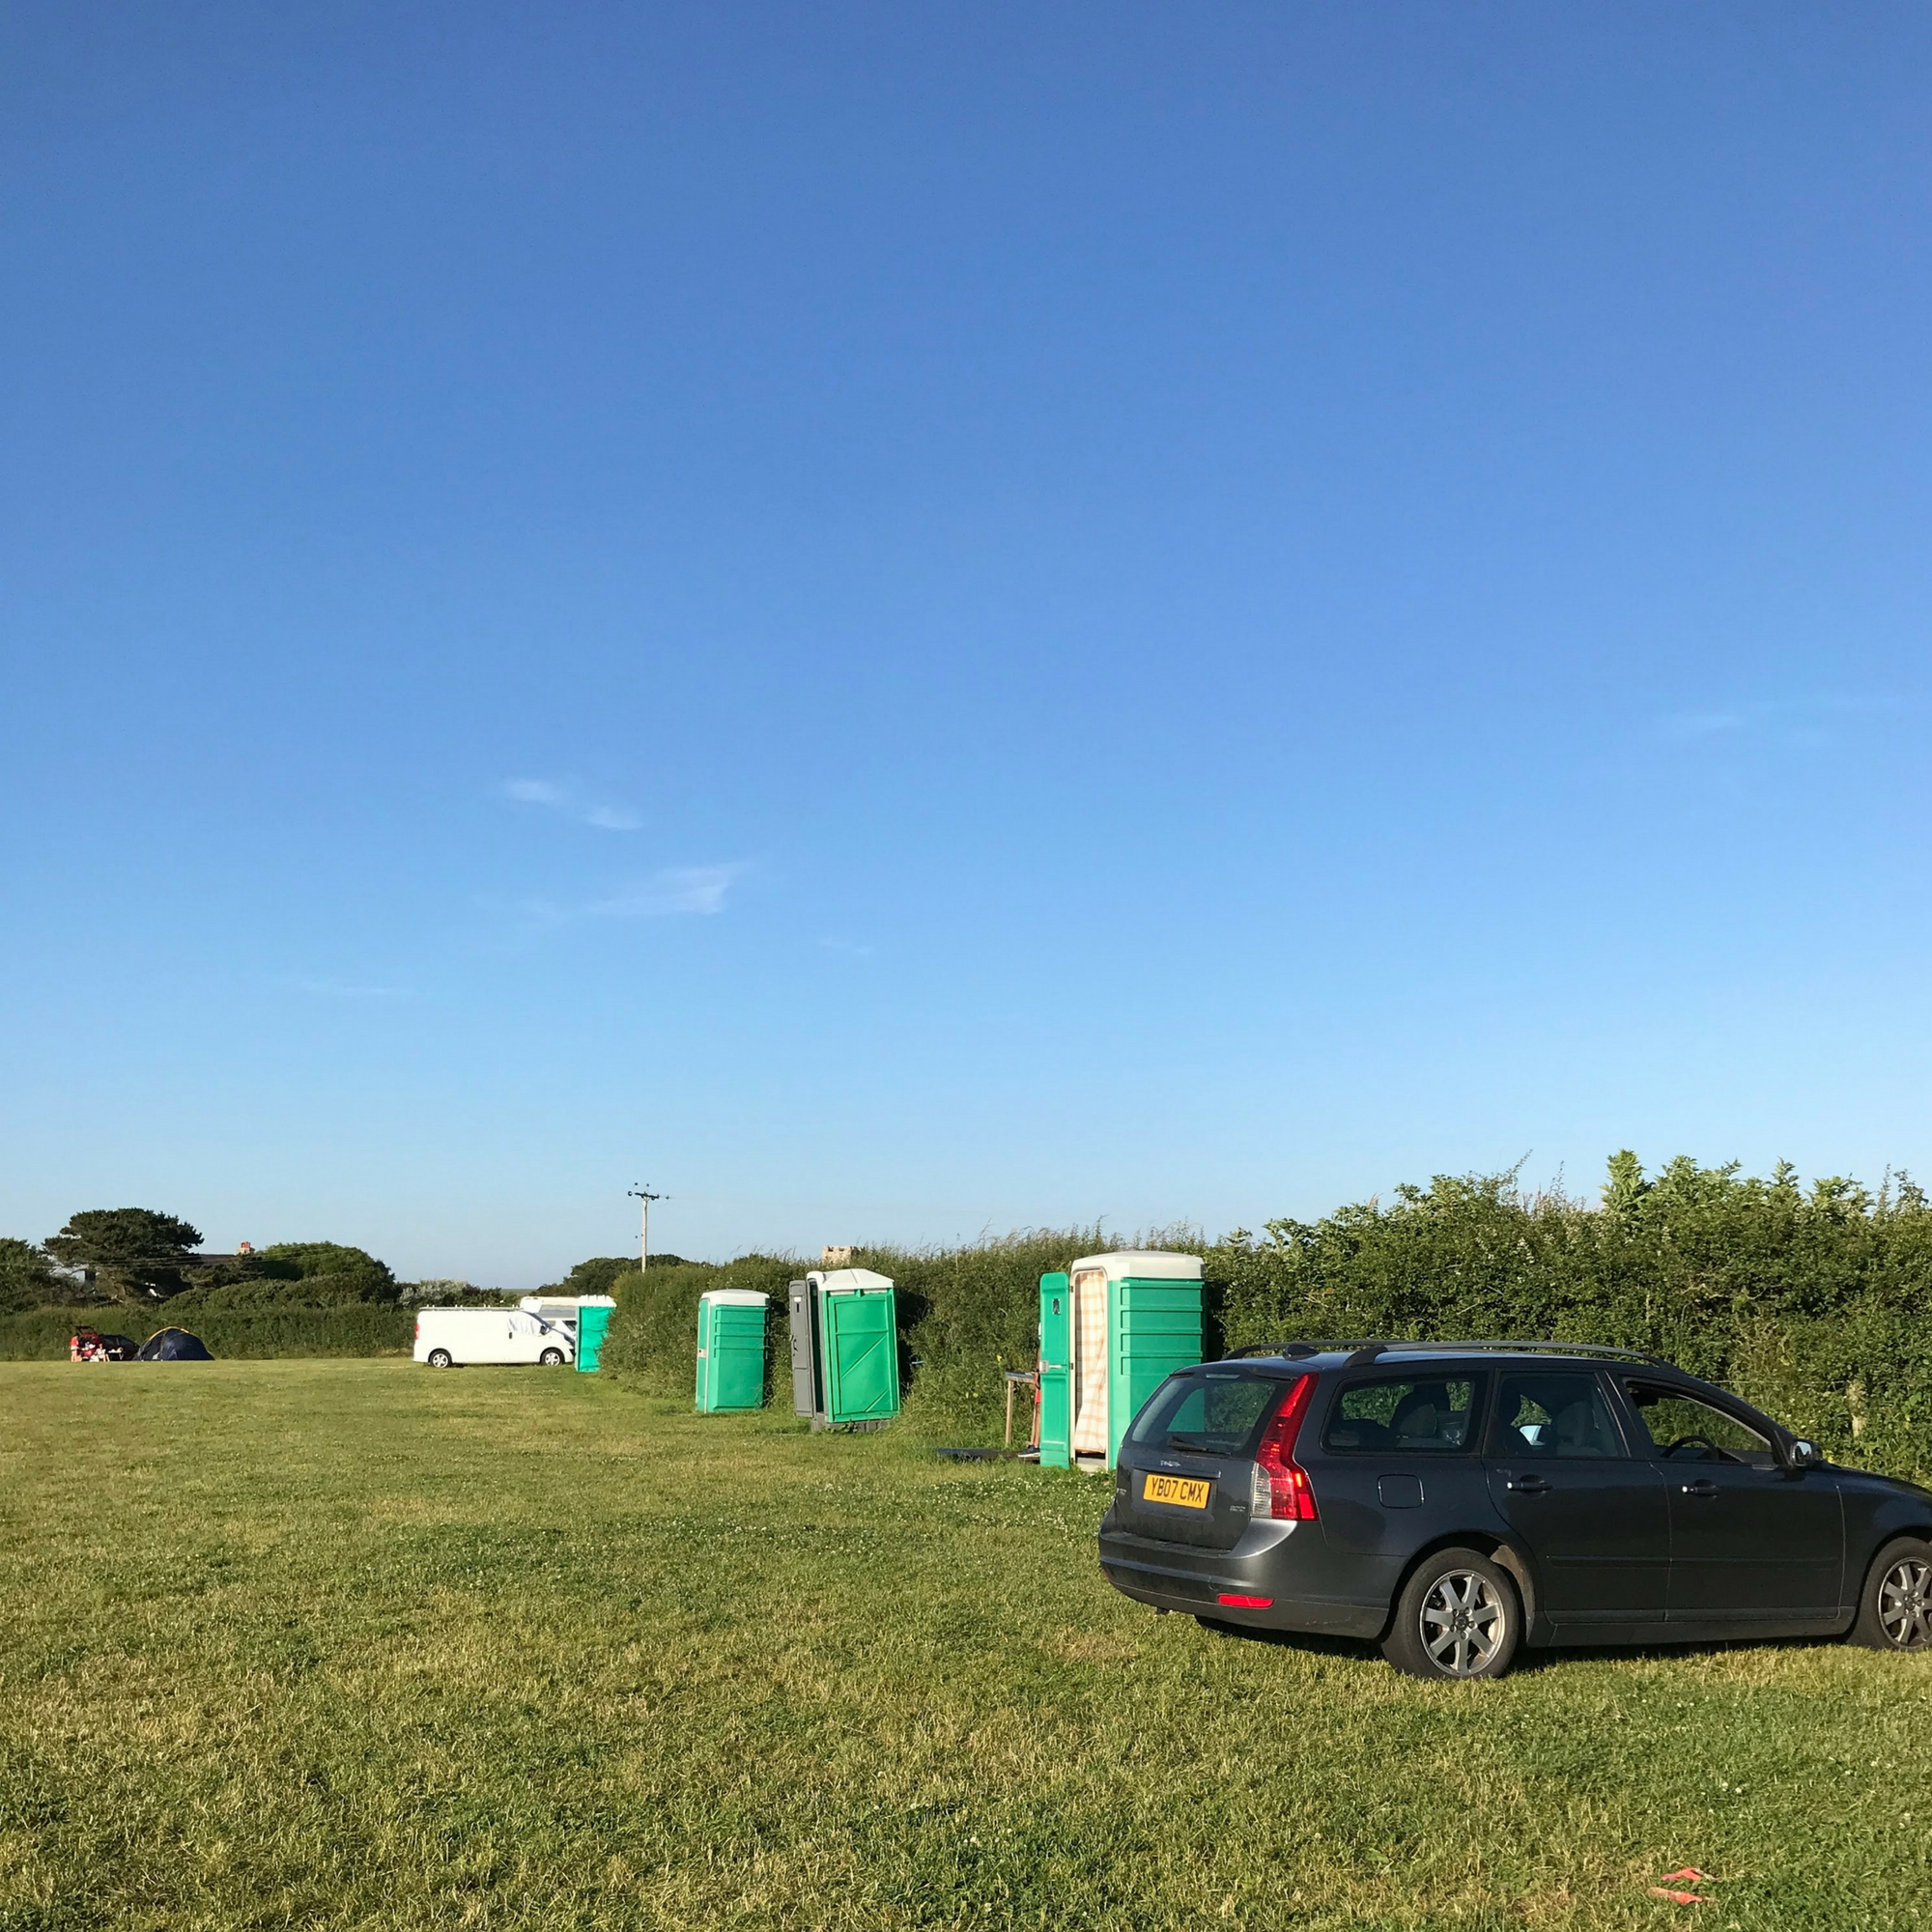 Camping in Pembrokeshire for £5 (1)